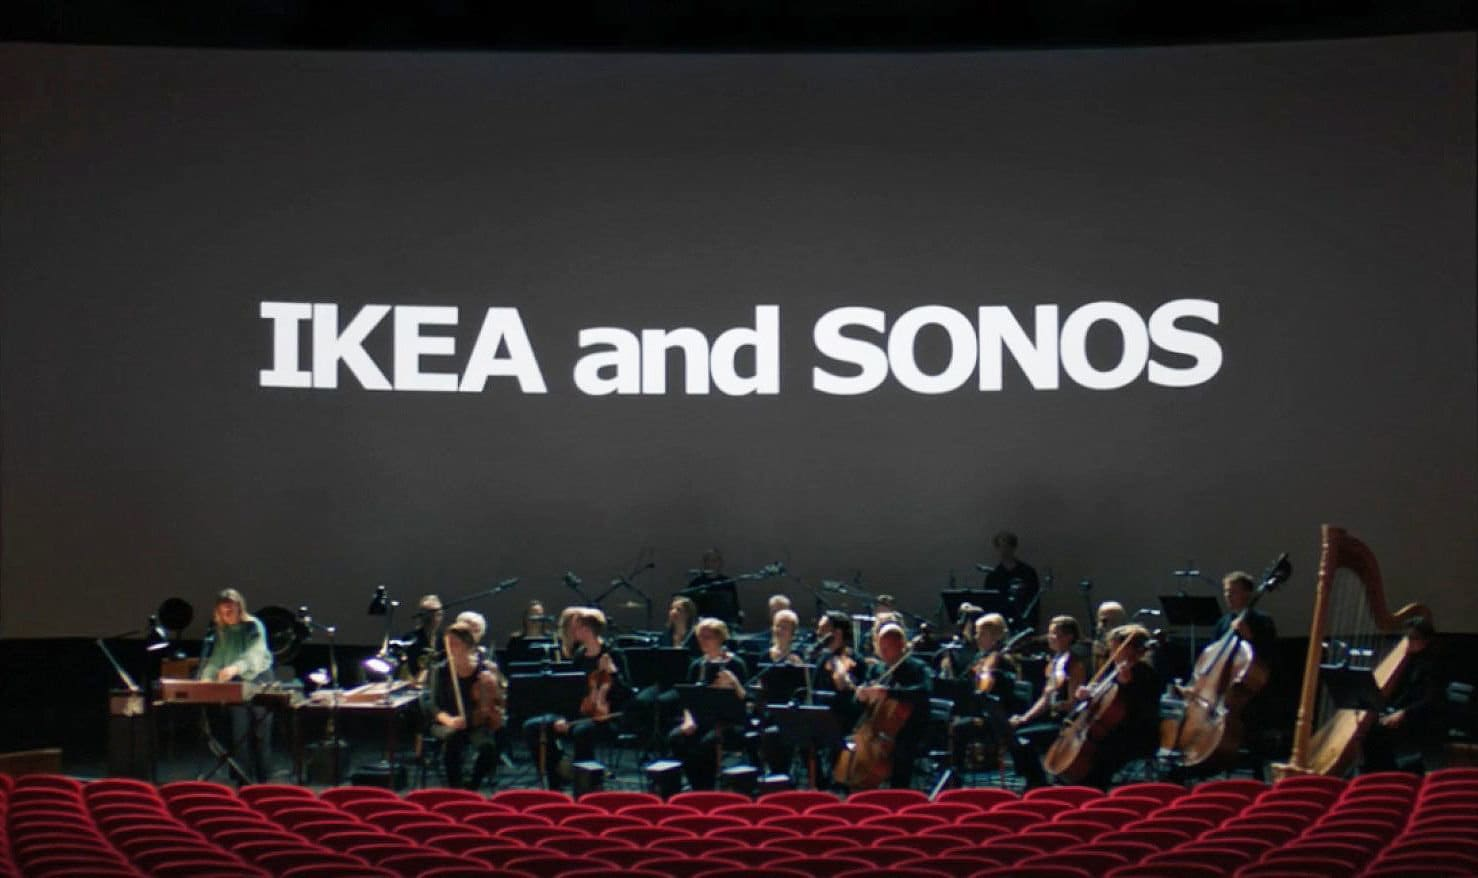 IKEA and SONOS